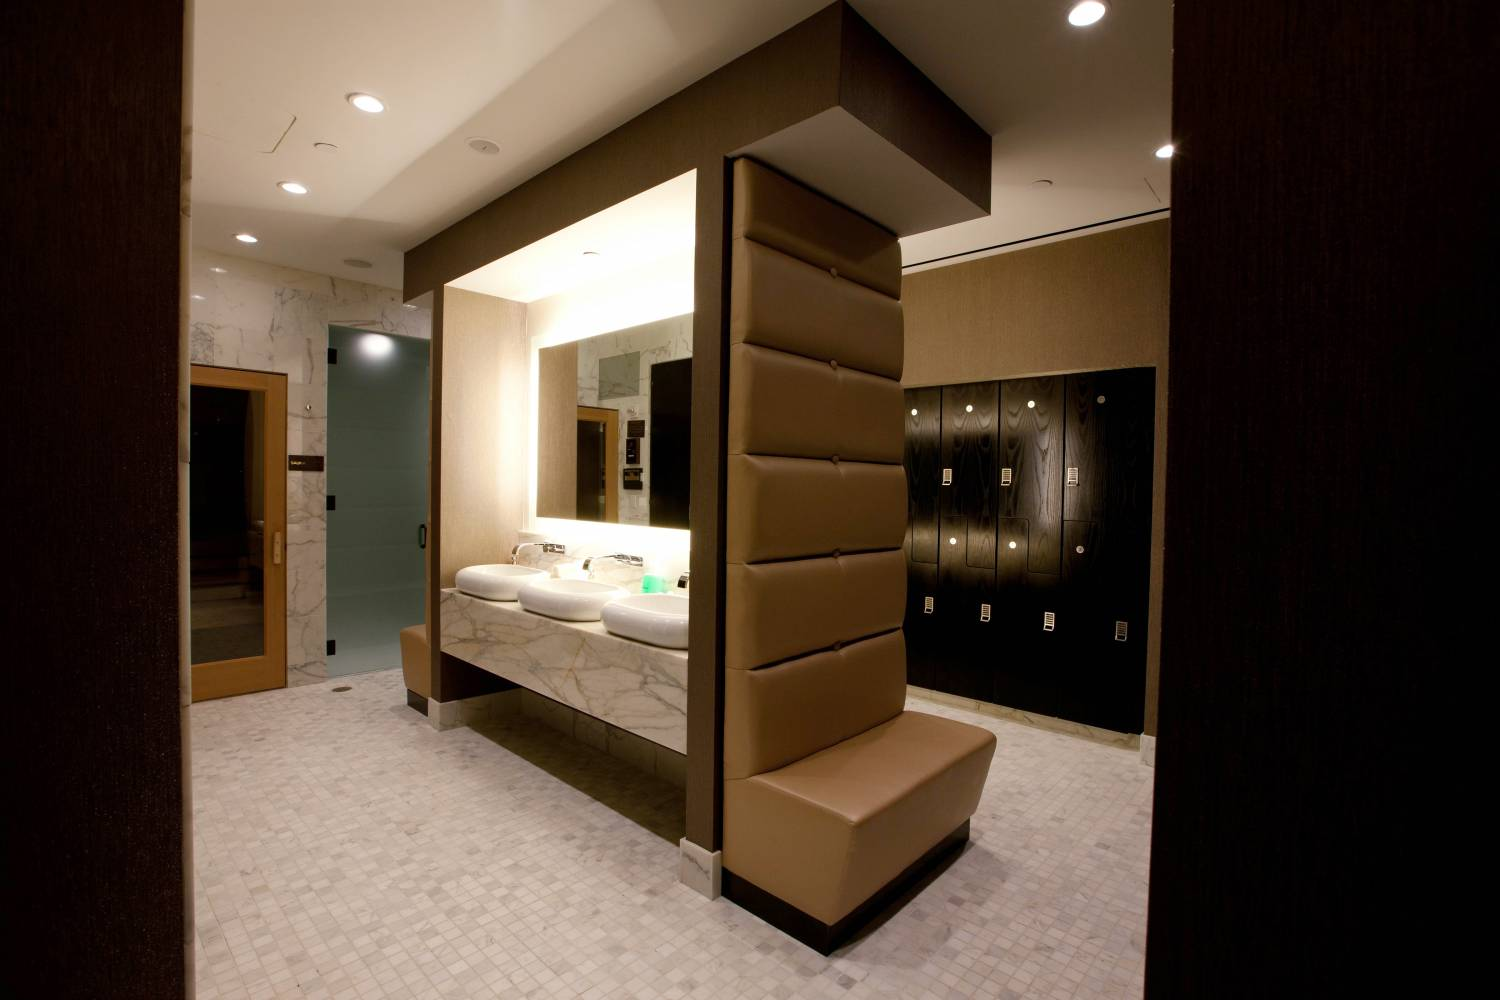 Prodigy spa locker room at The Spa at Trump SoHo